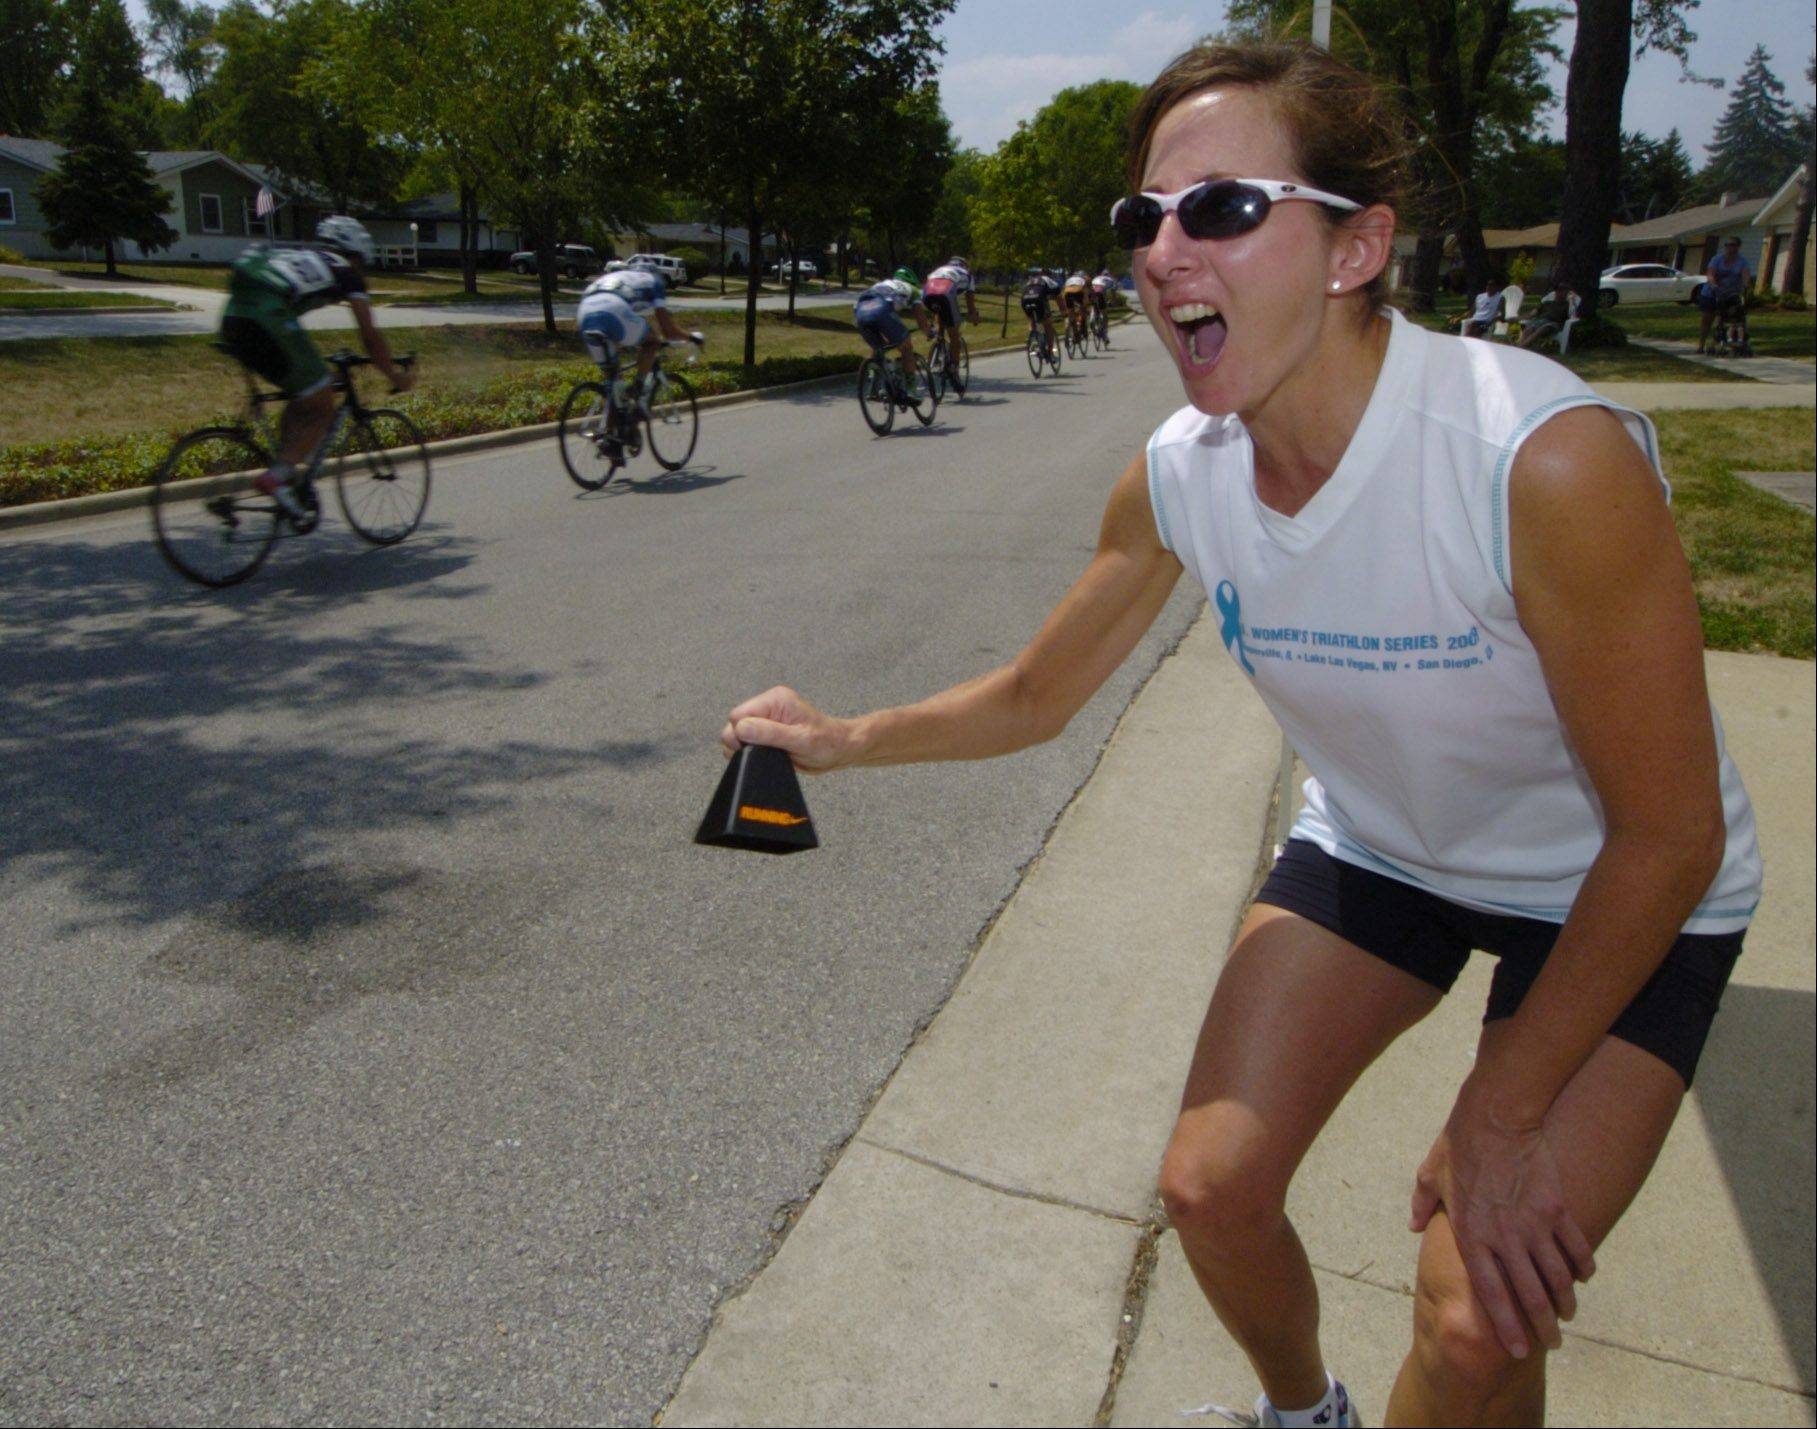 Laura Kauth of Schaumburg rings her cow bell while cheering on riders during the Tour of Elk Grove Saturday.